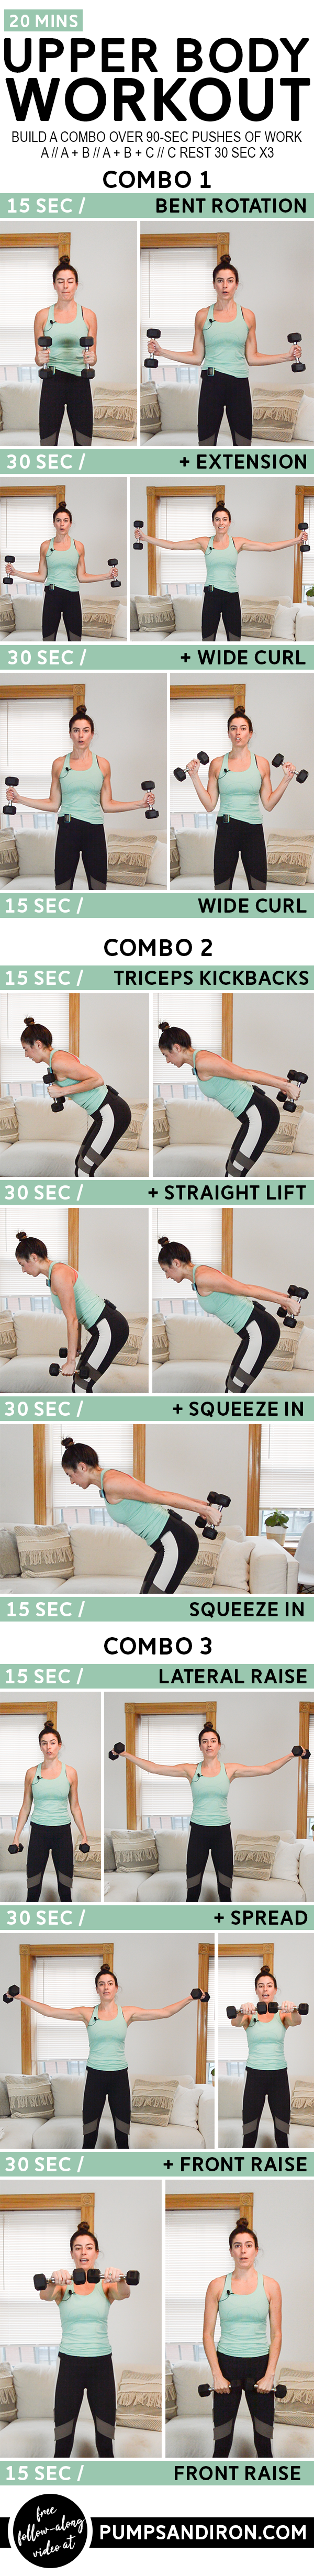 Build-a-Combo Upper Body Workout - Grab a set of dumbbells for this 20-minute upper body workout. It...